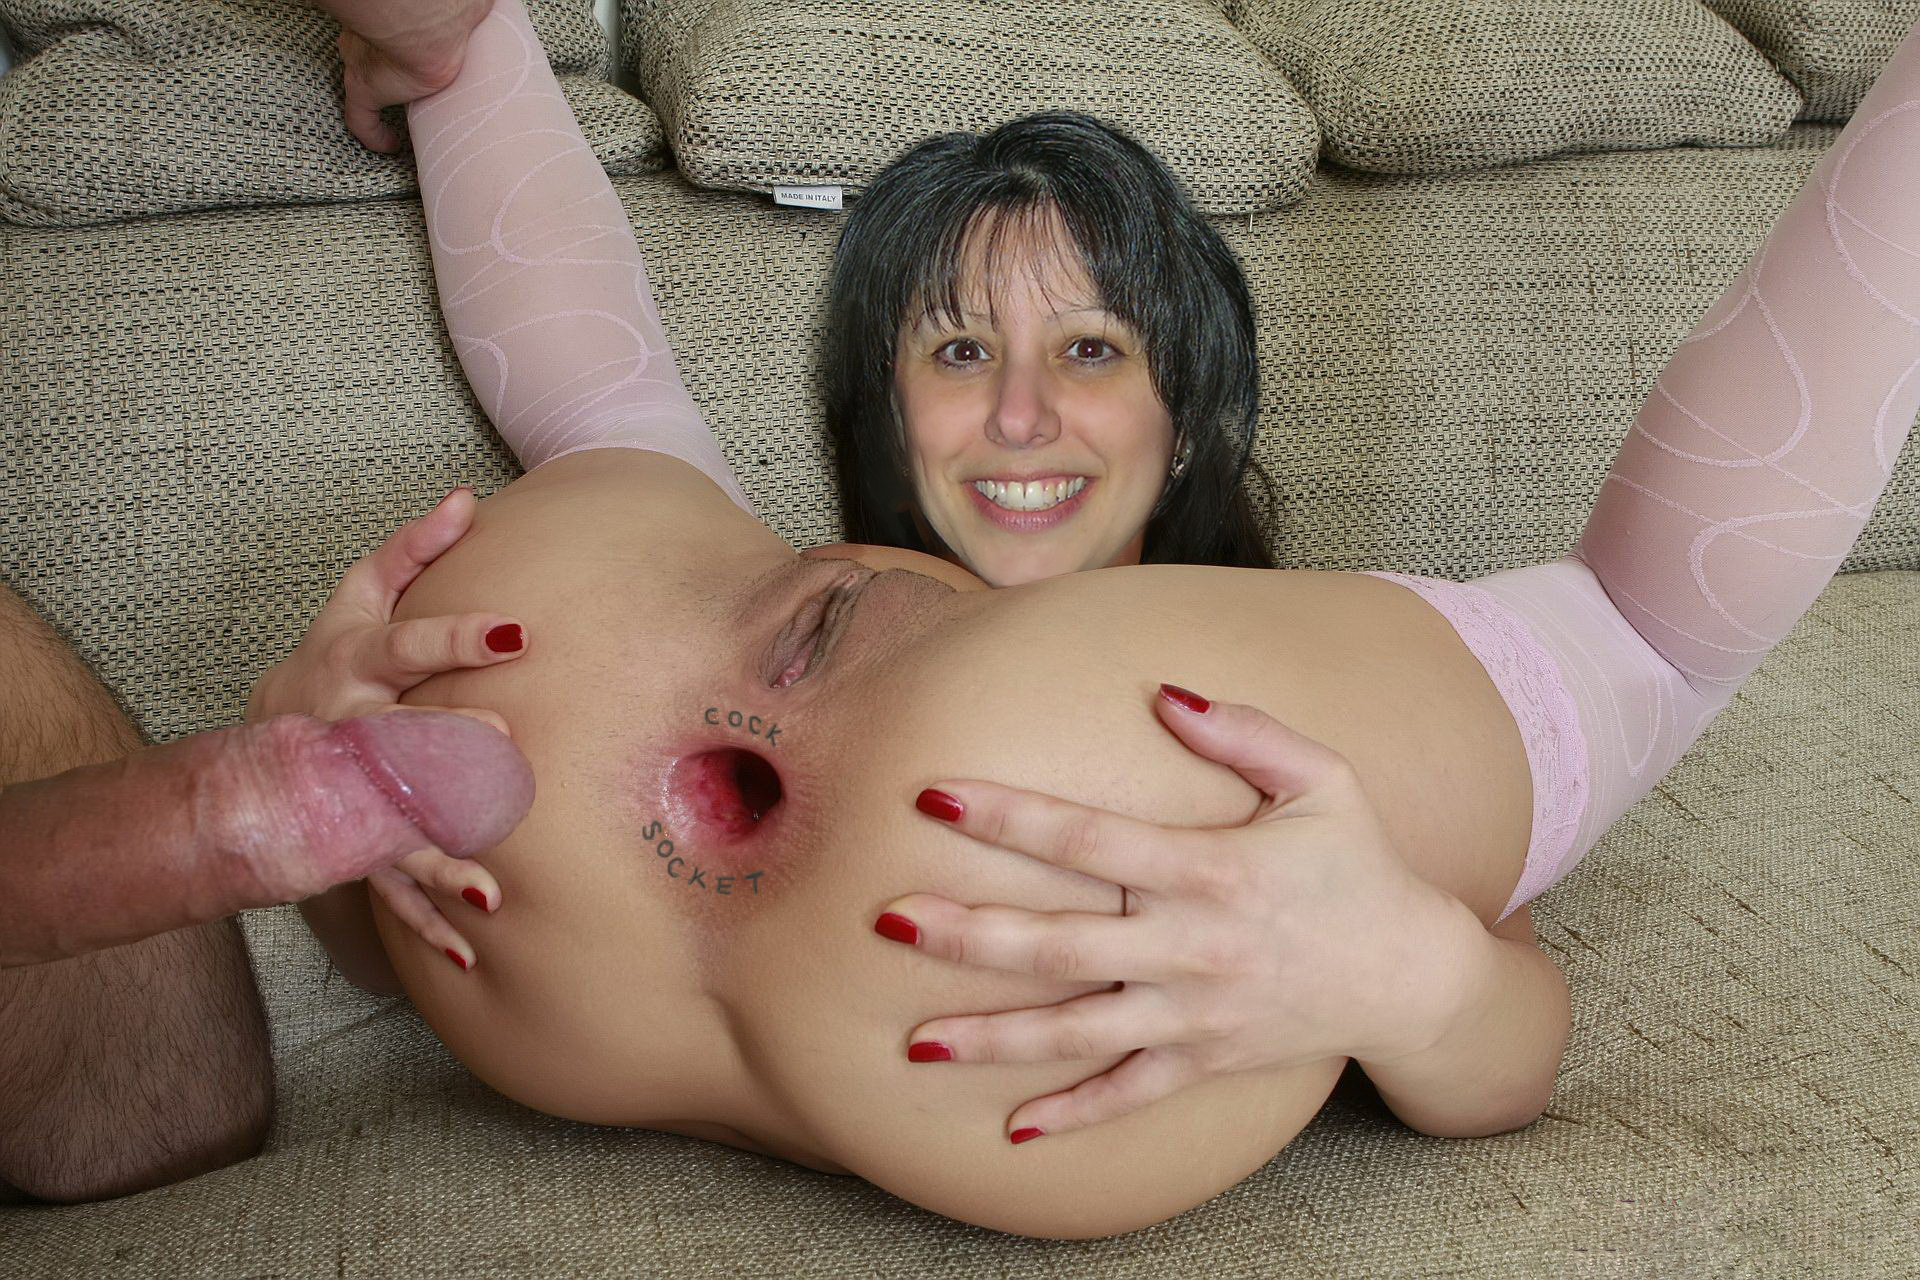 from Shawn bbw girl pussy gaping